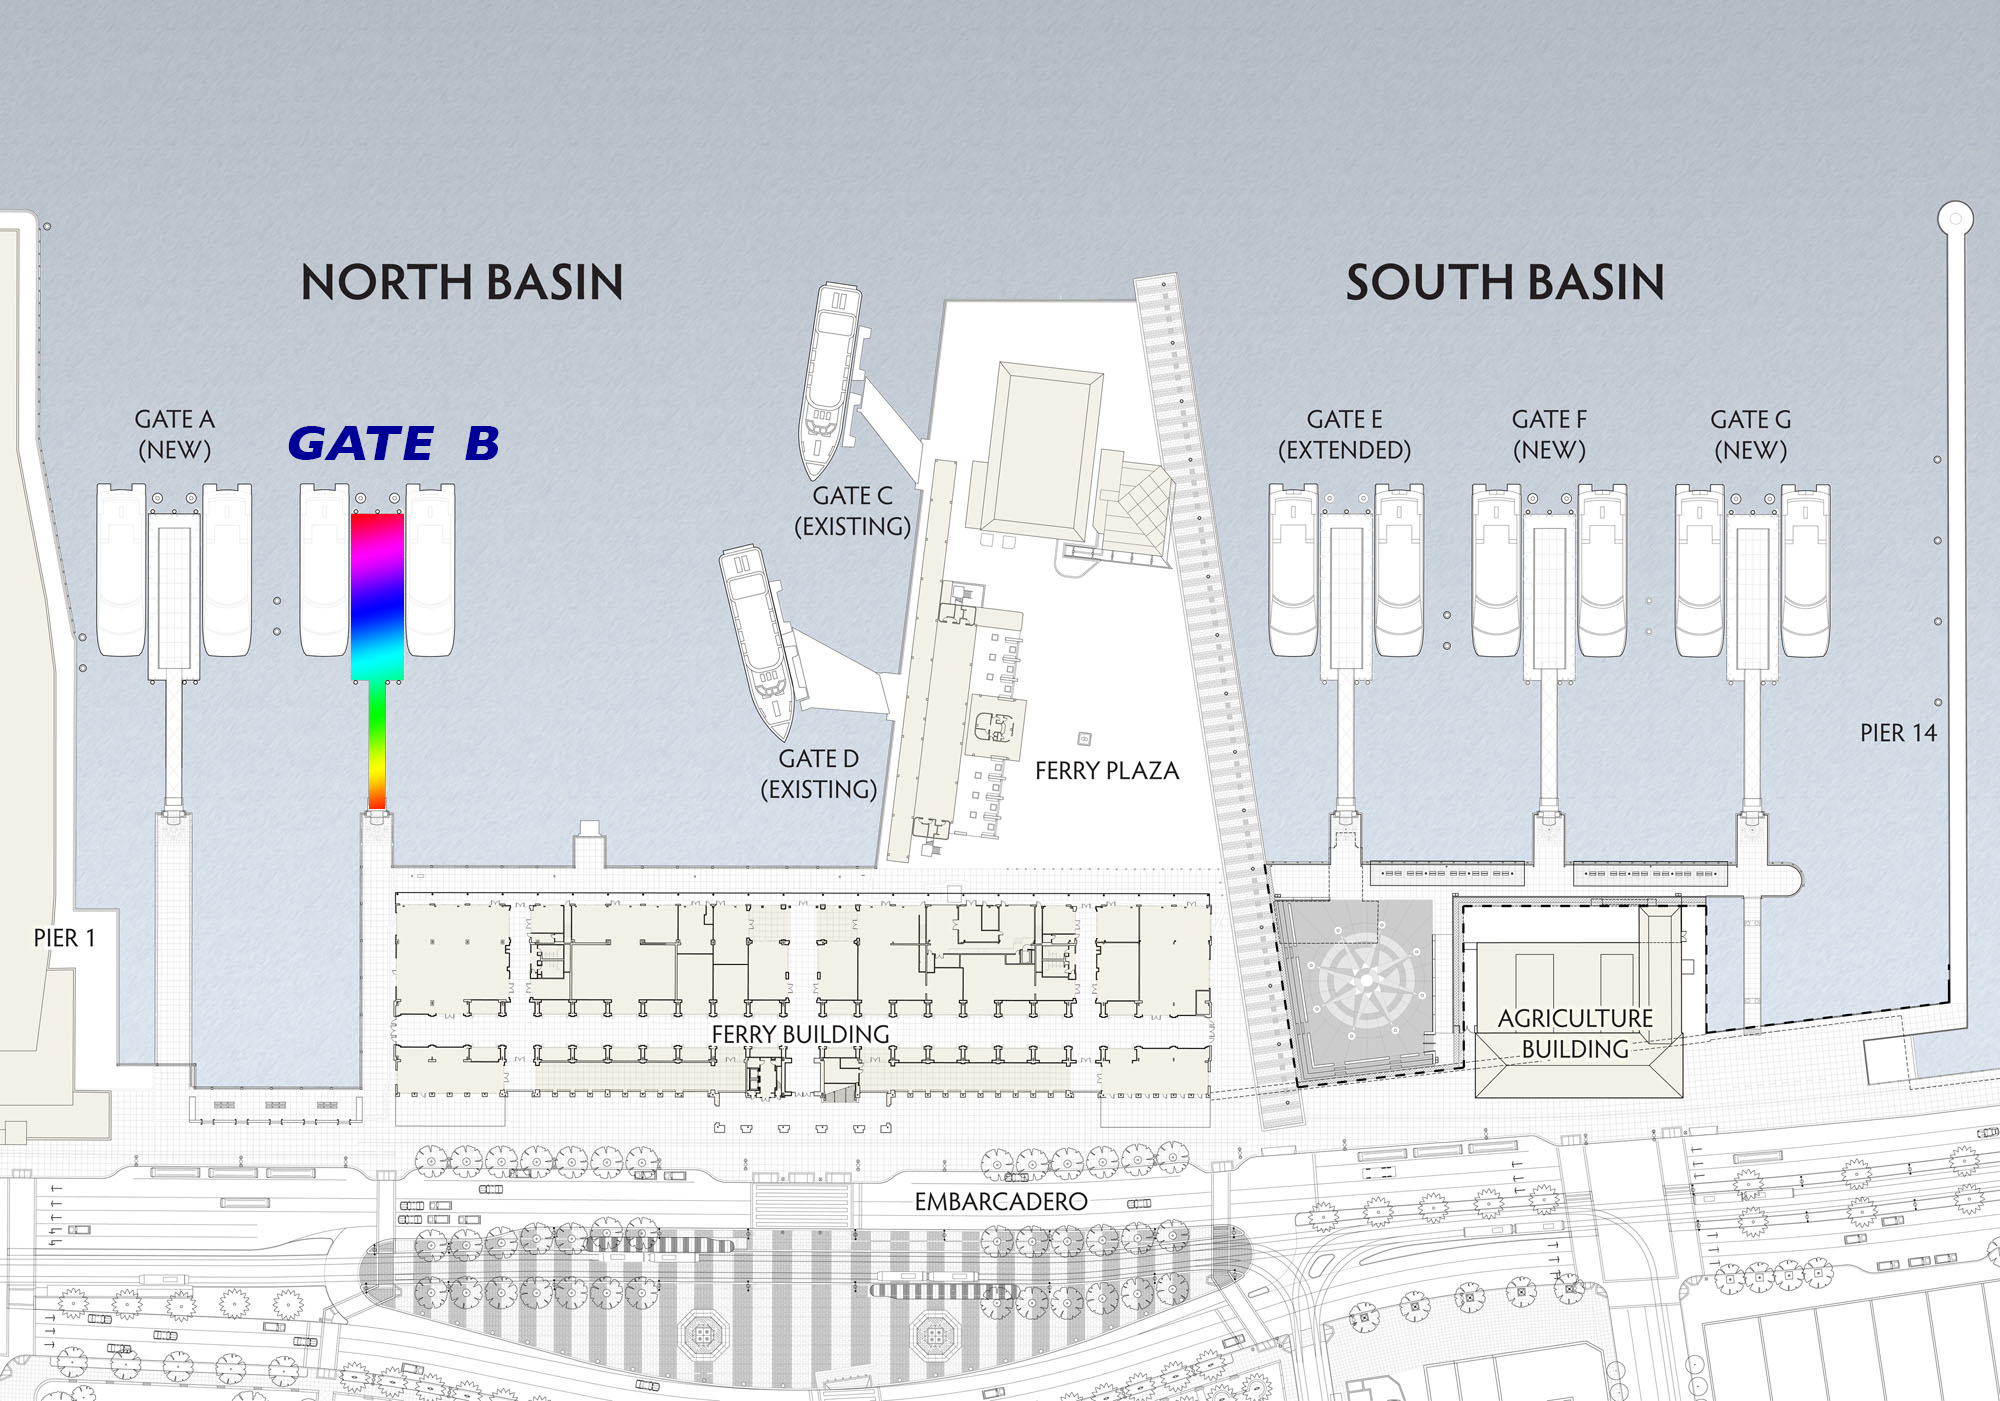 The 2019 Bay Cruise will be leaving from  GATE B  at the Ferry Building. This is on the North Side of the Ferry Building and is different from where we have boarded in the past.